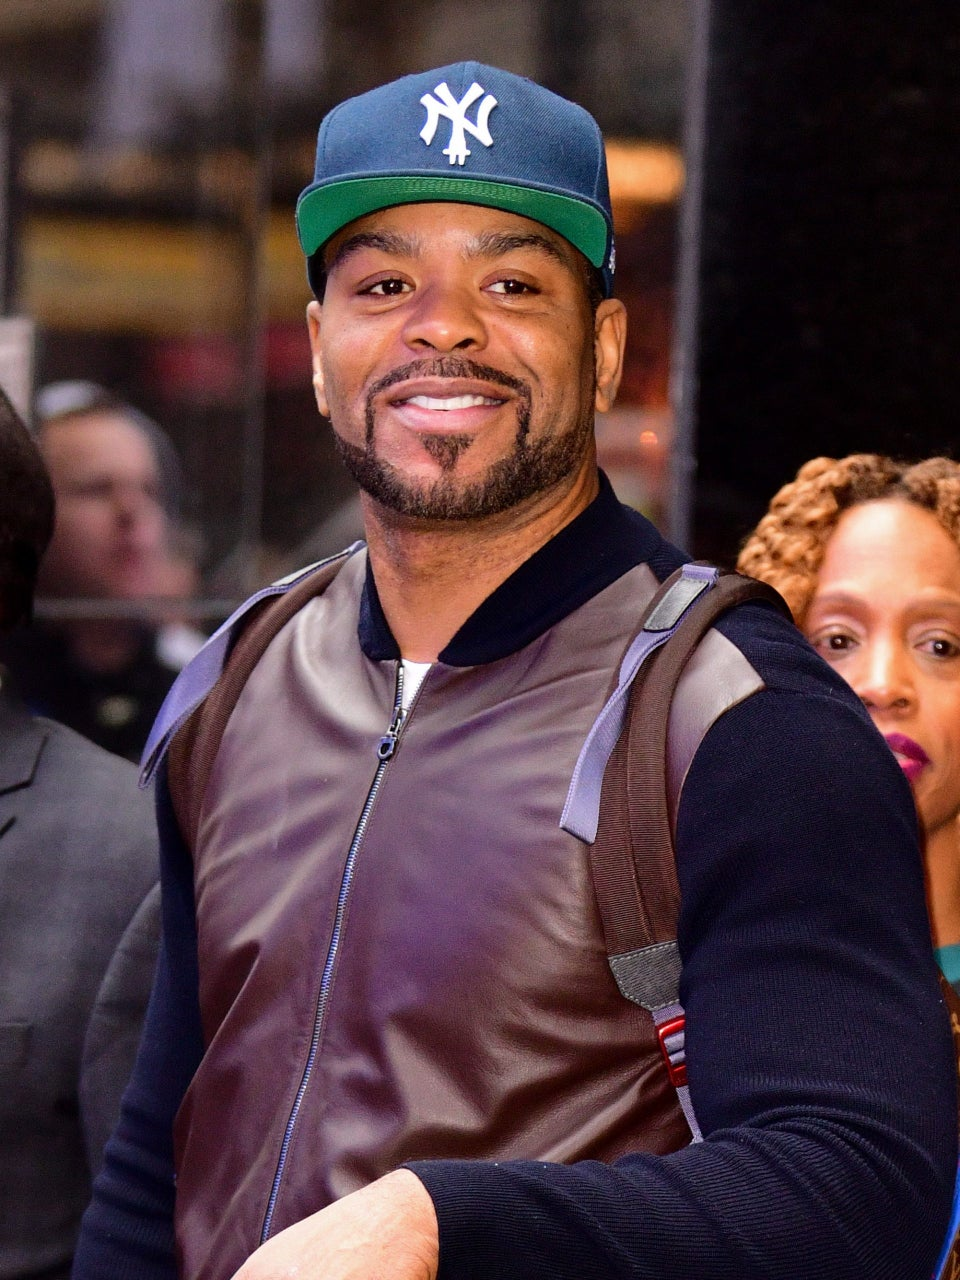 A Typically Private Method Man Opens Up About What's Kept His 20-Year Marriage Solid